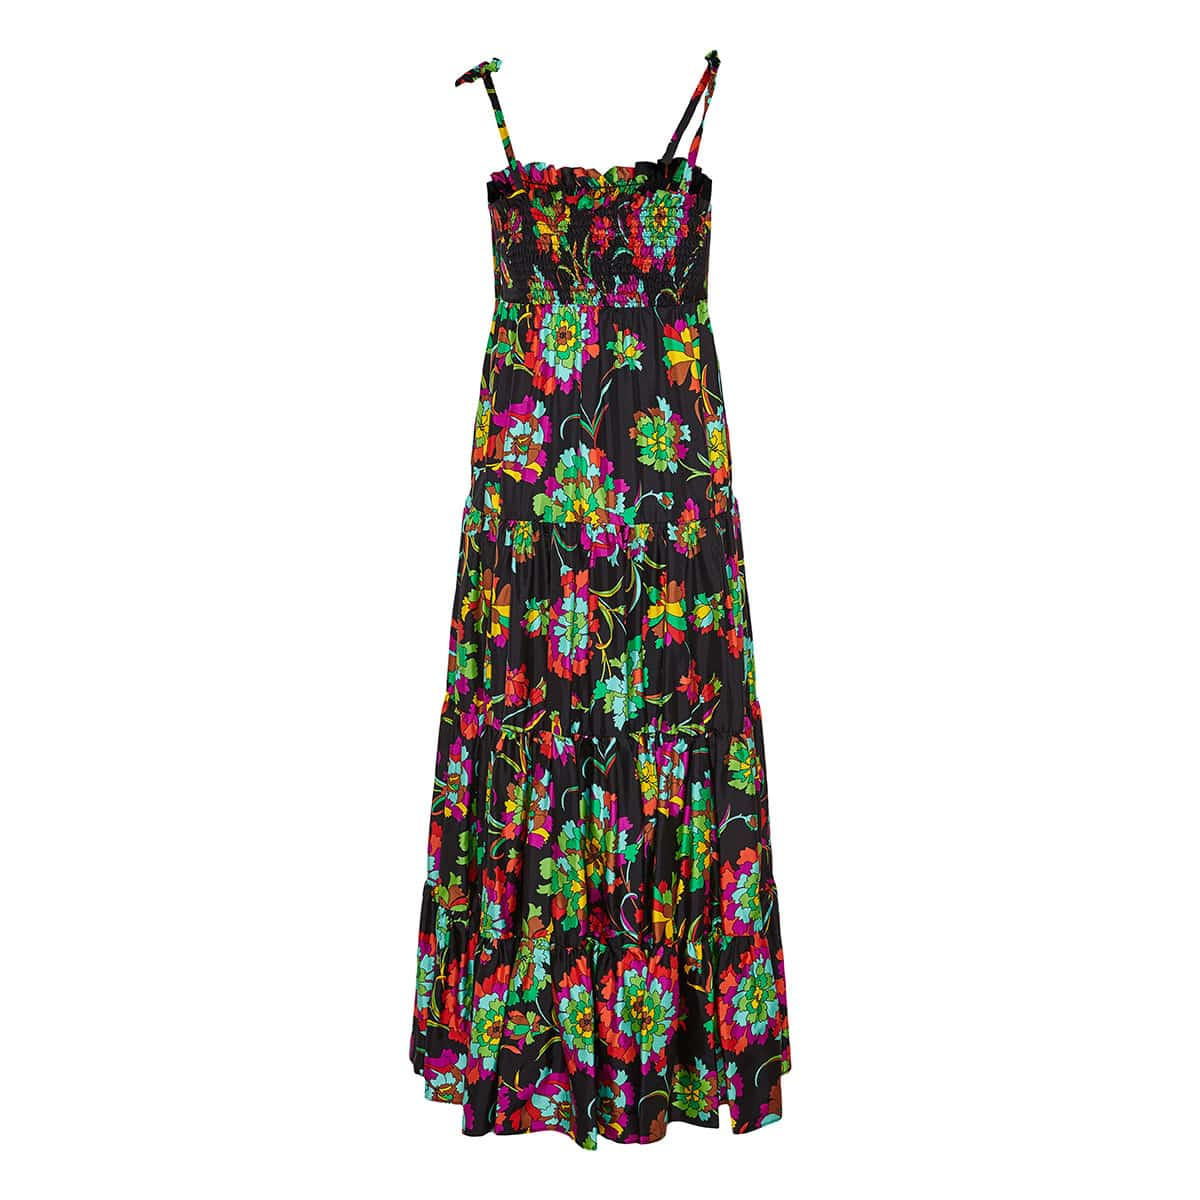 Bouncy floral tiered dress